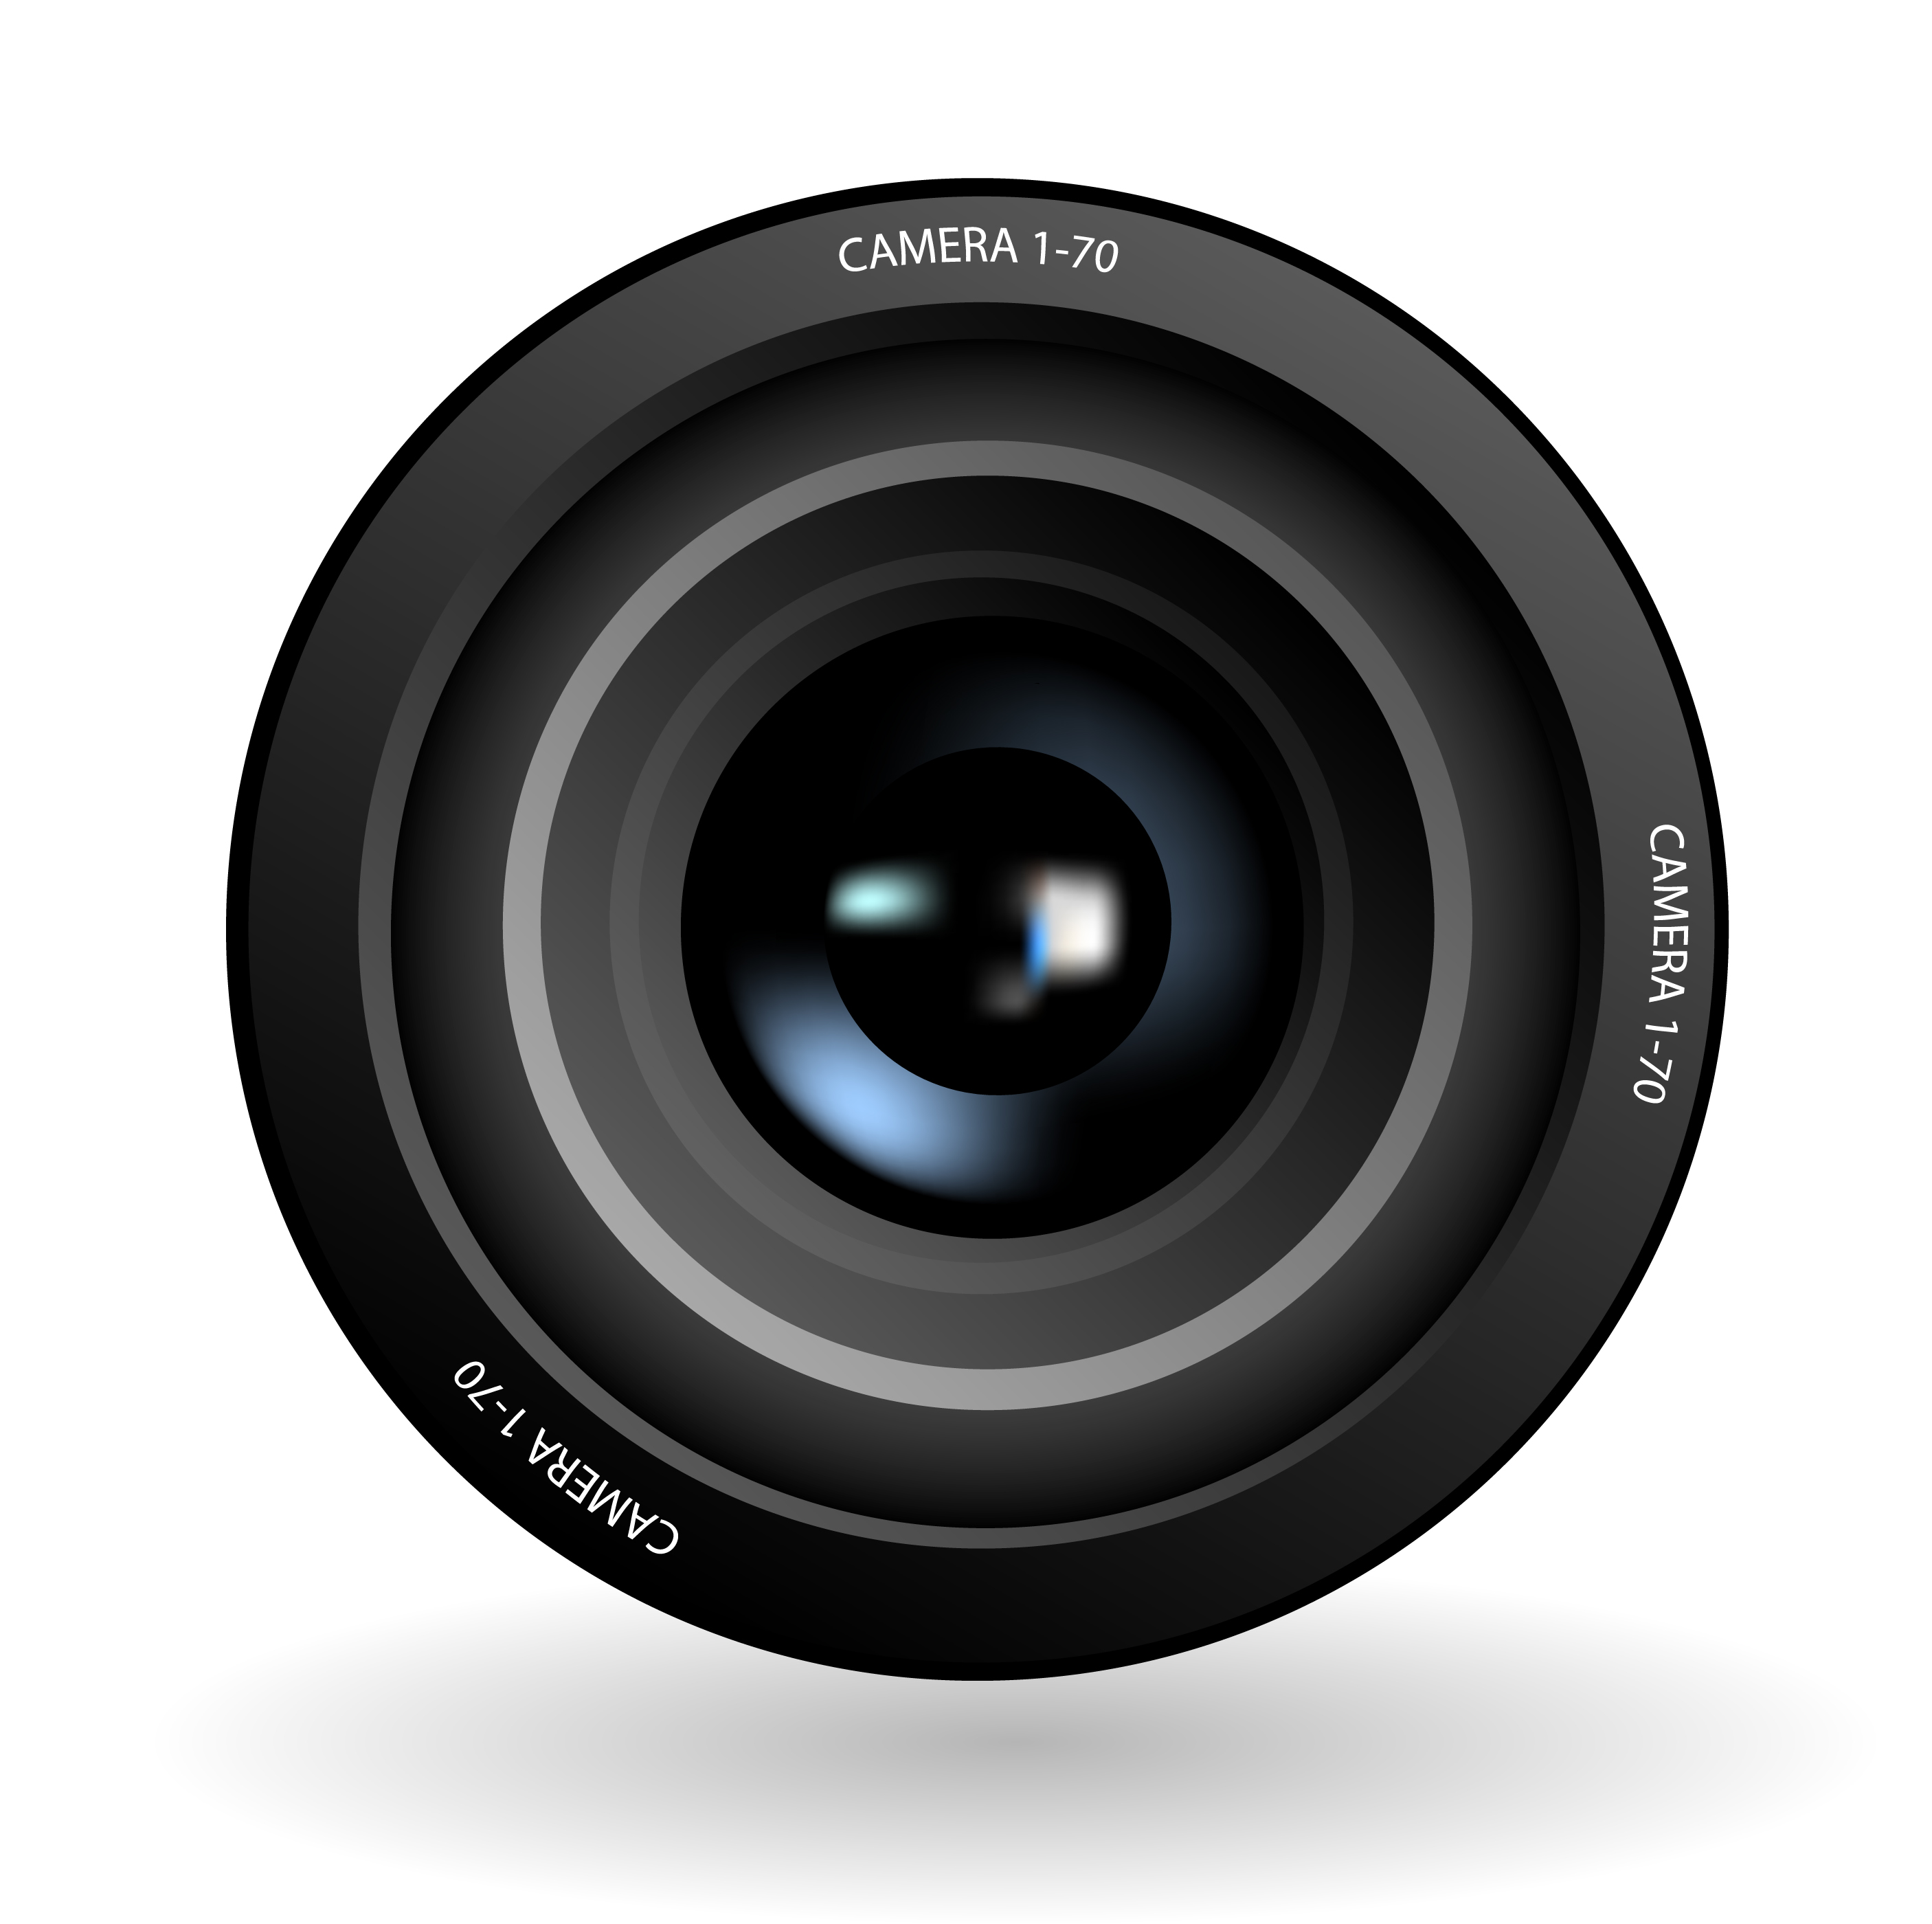 Camera Lens Png (101+ images in Collection) Page 2.